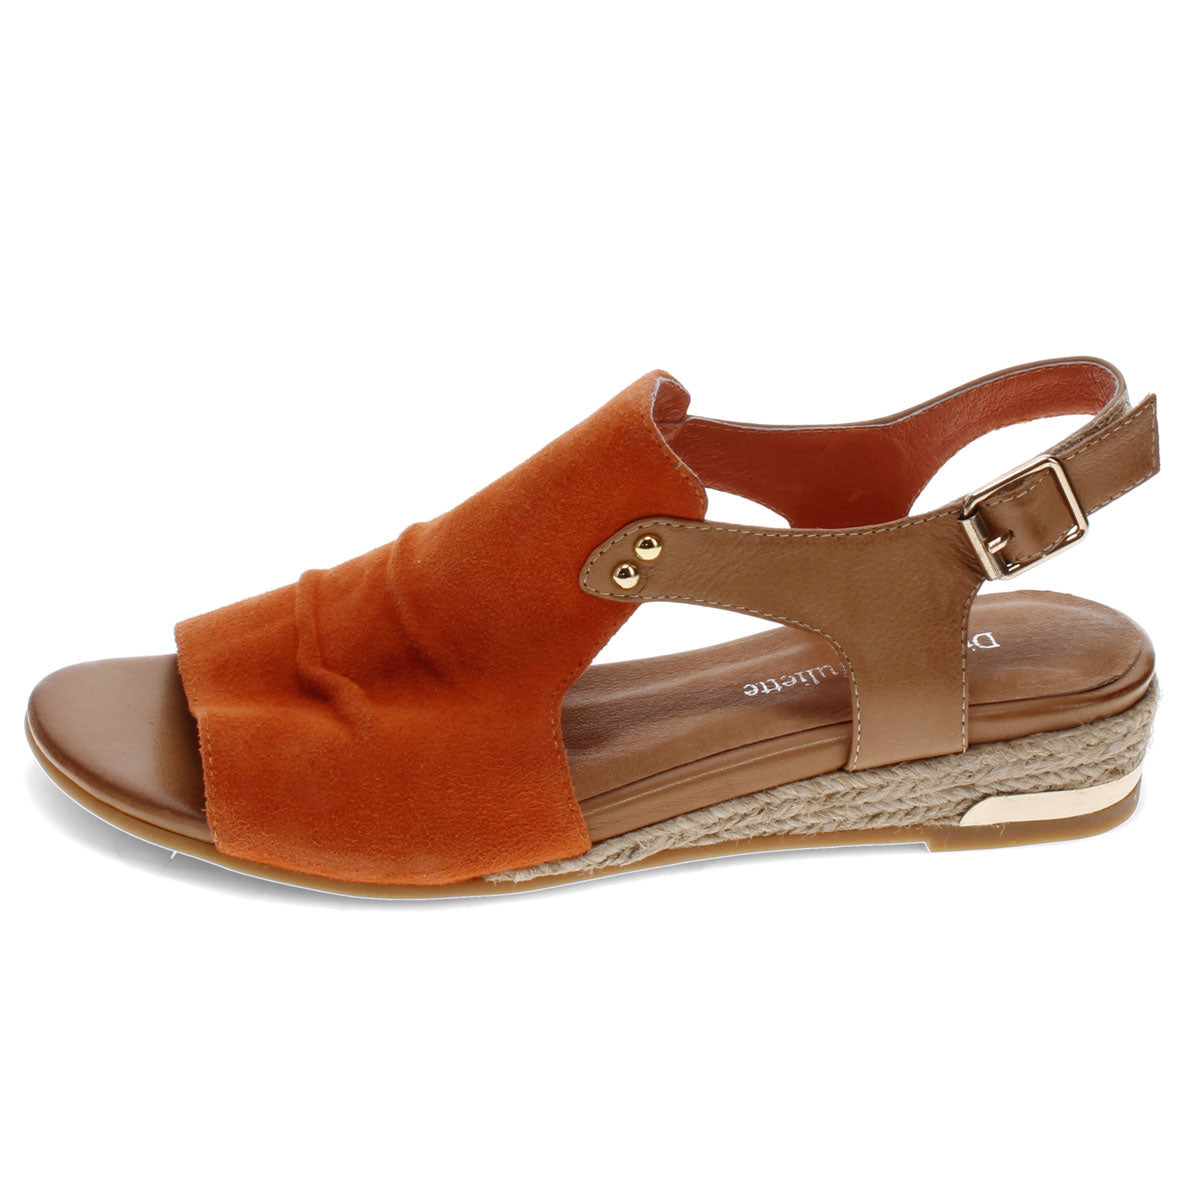 ORANGE-TAN SUEDE | Left